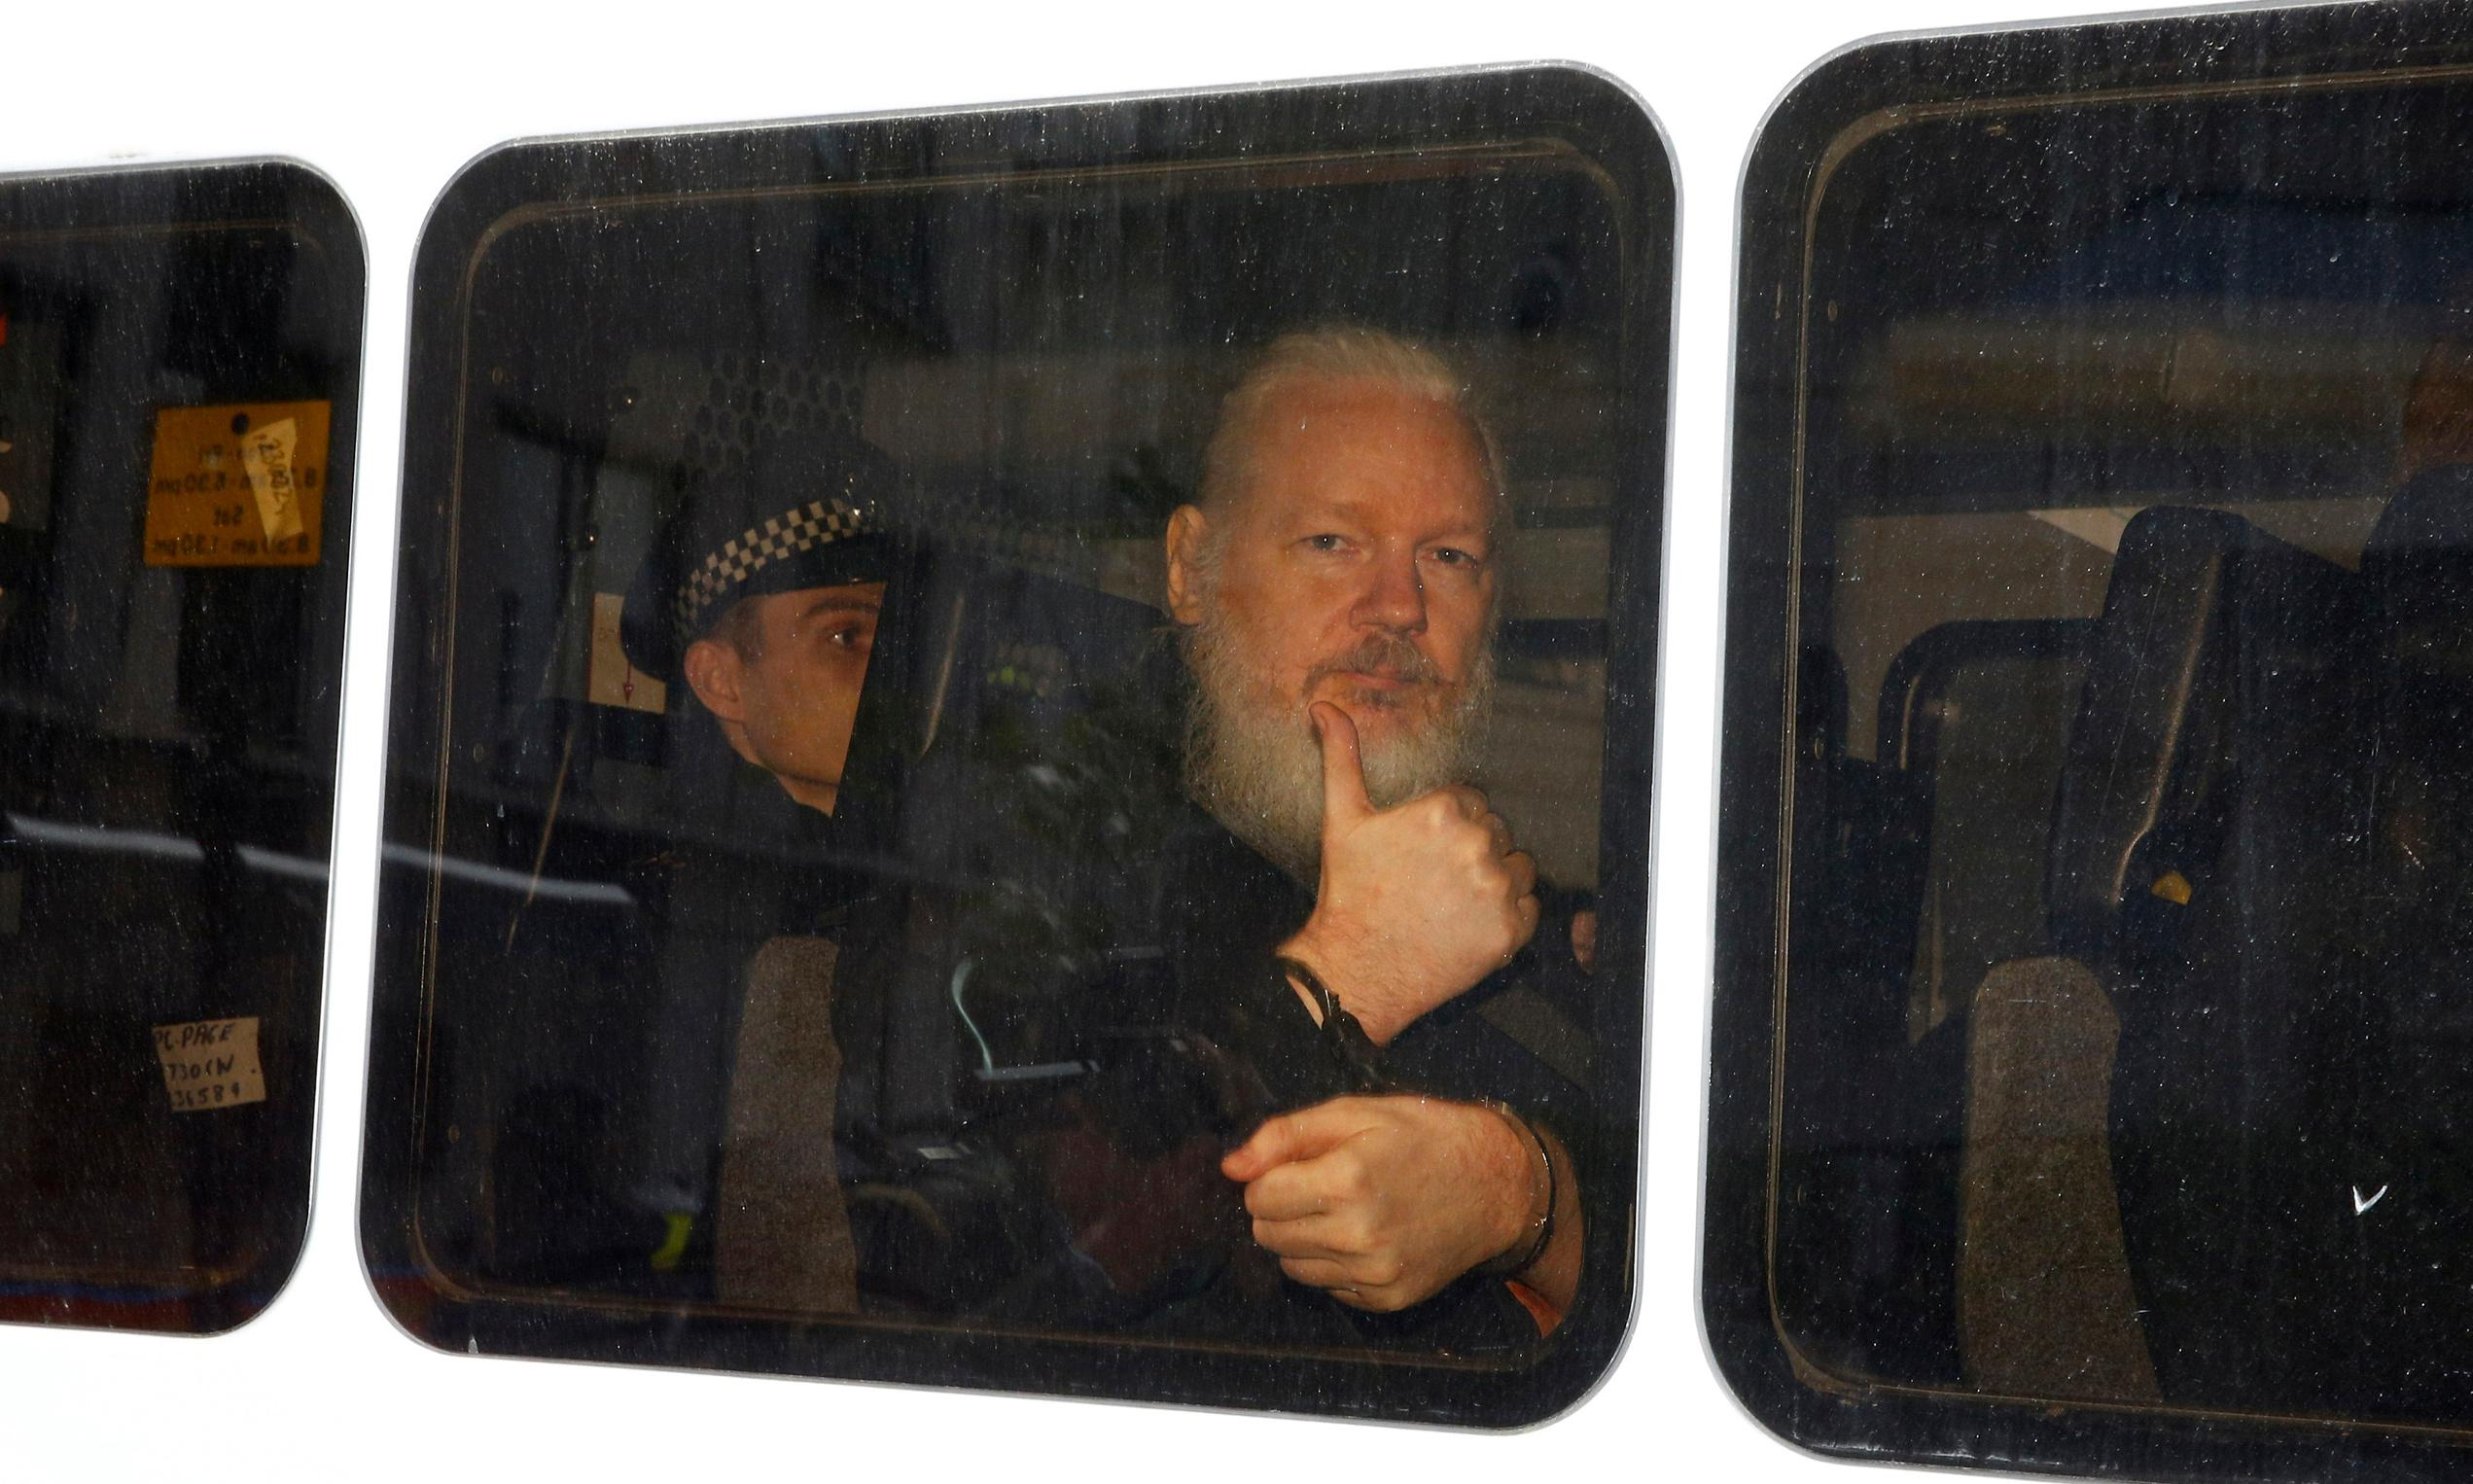 US prosecutors to 'help themselves' to Julian Assange's possessions